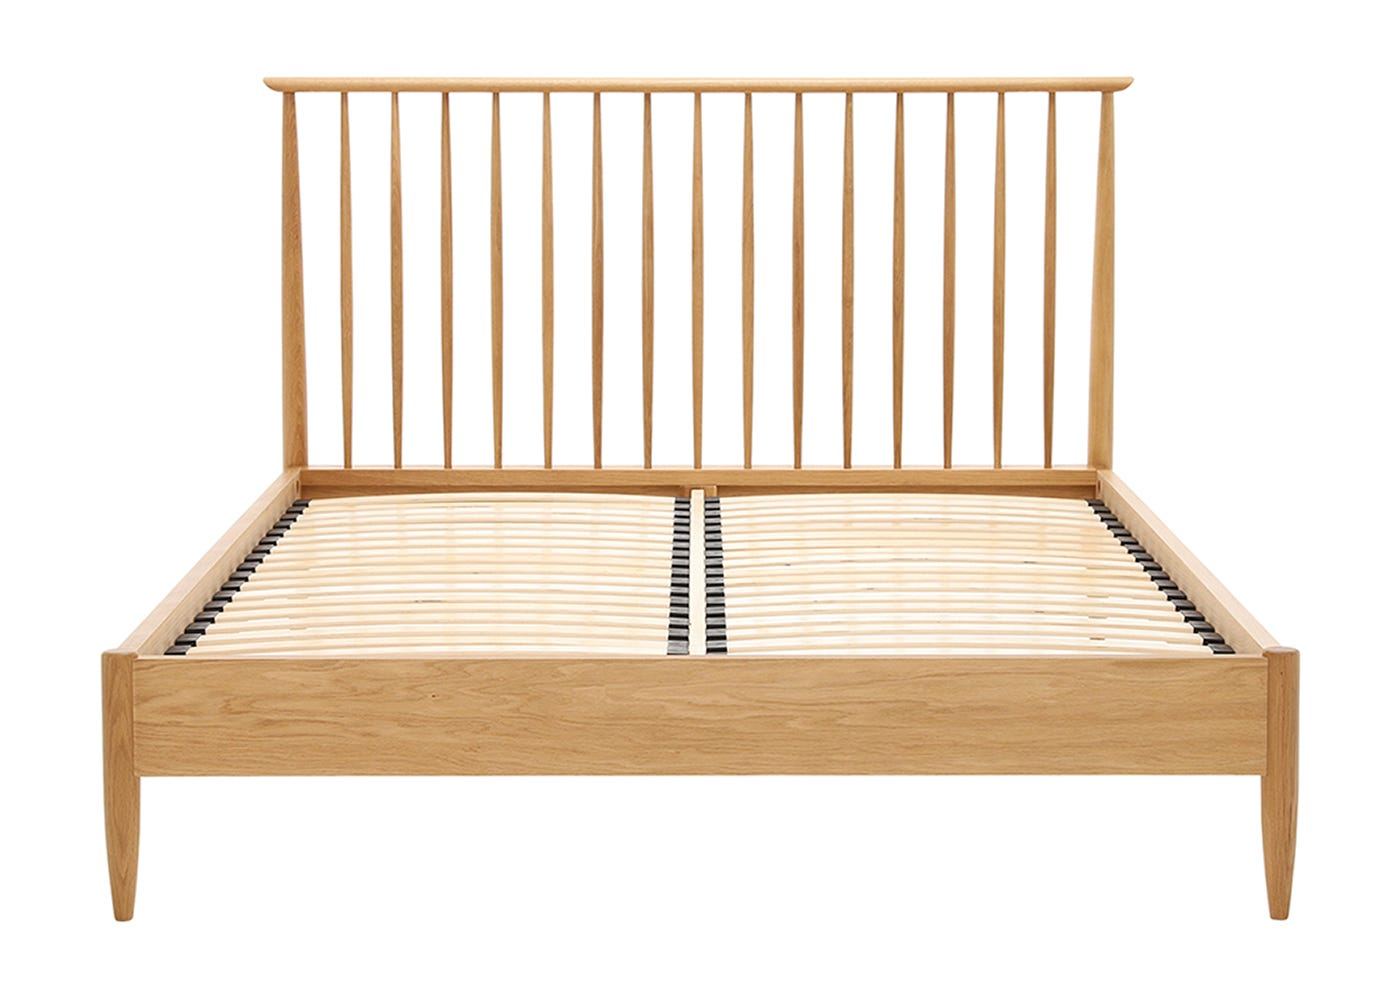 Teramo Bed - Front View